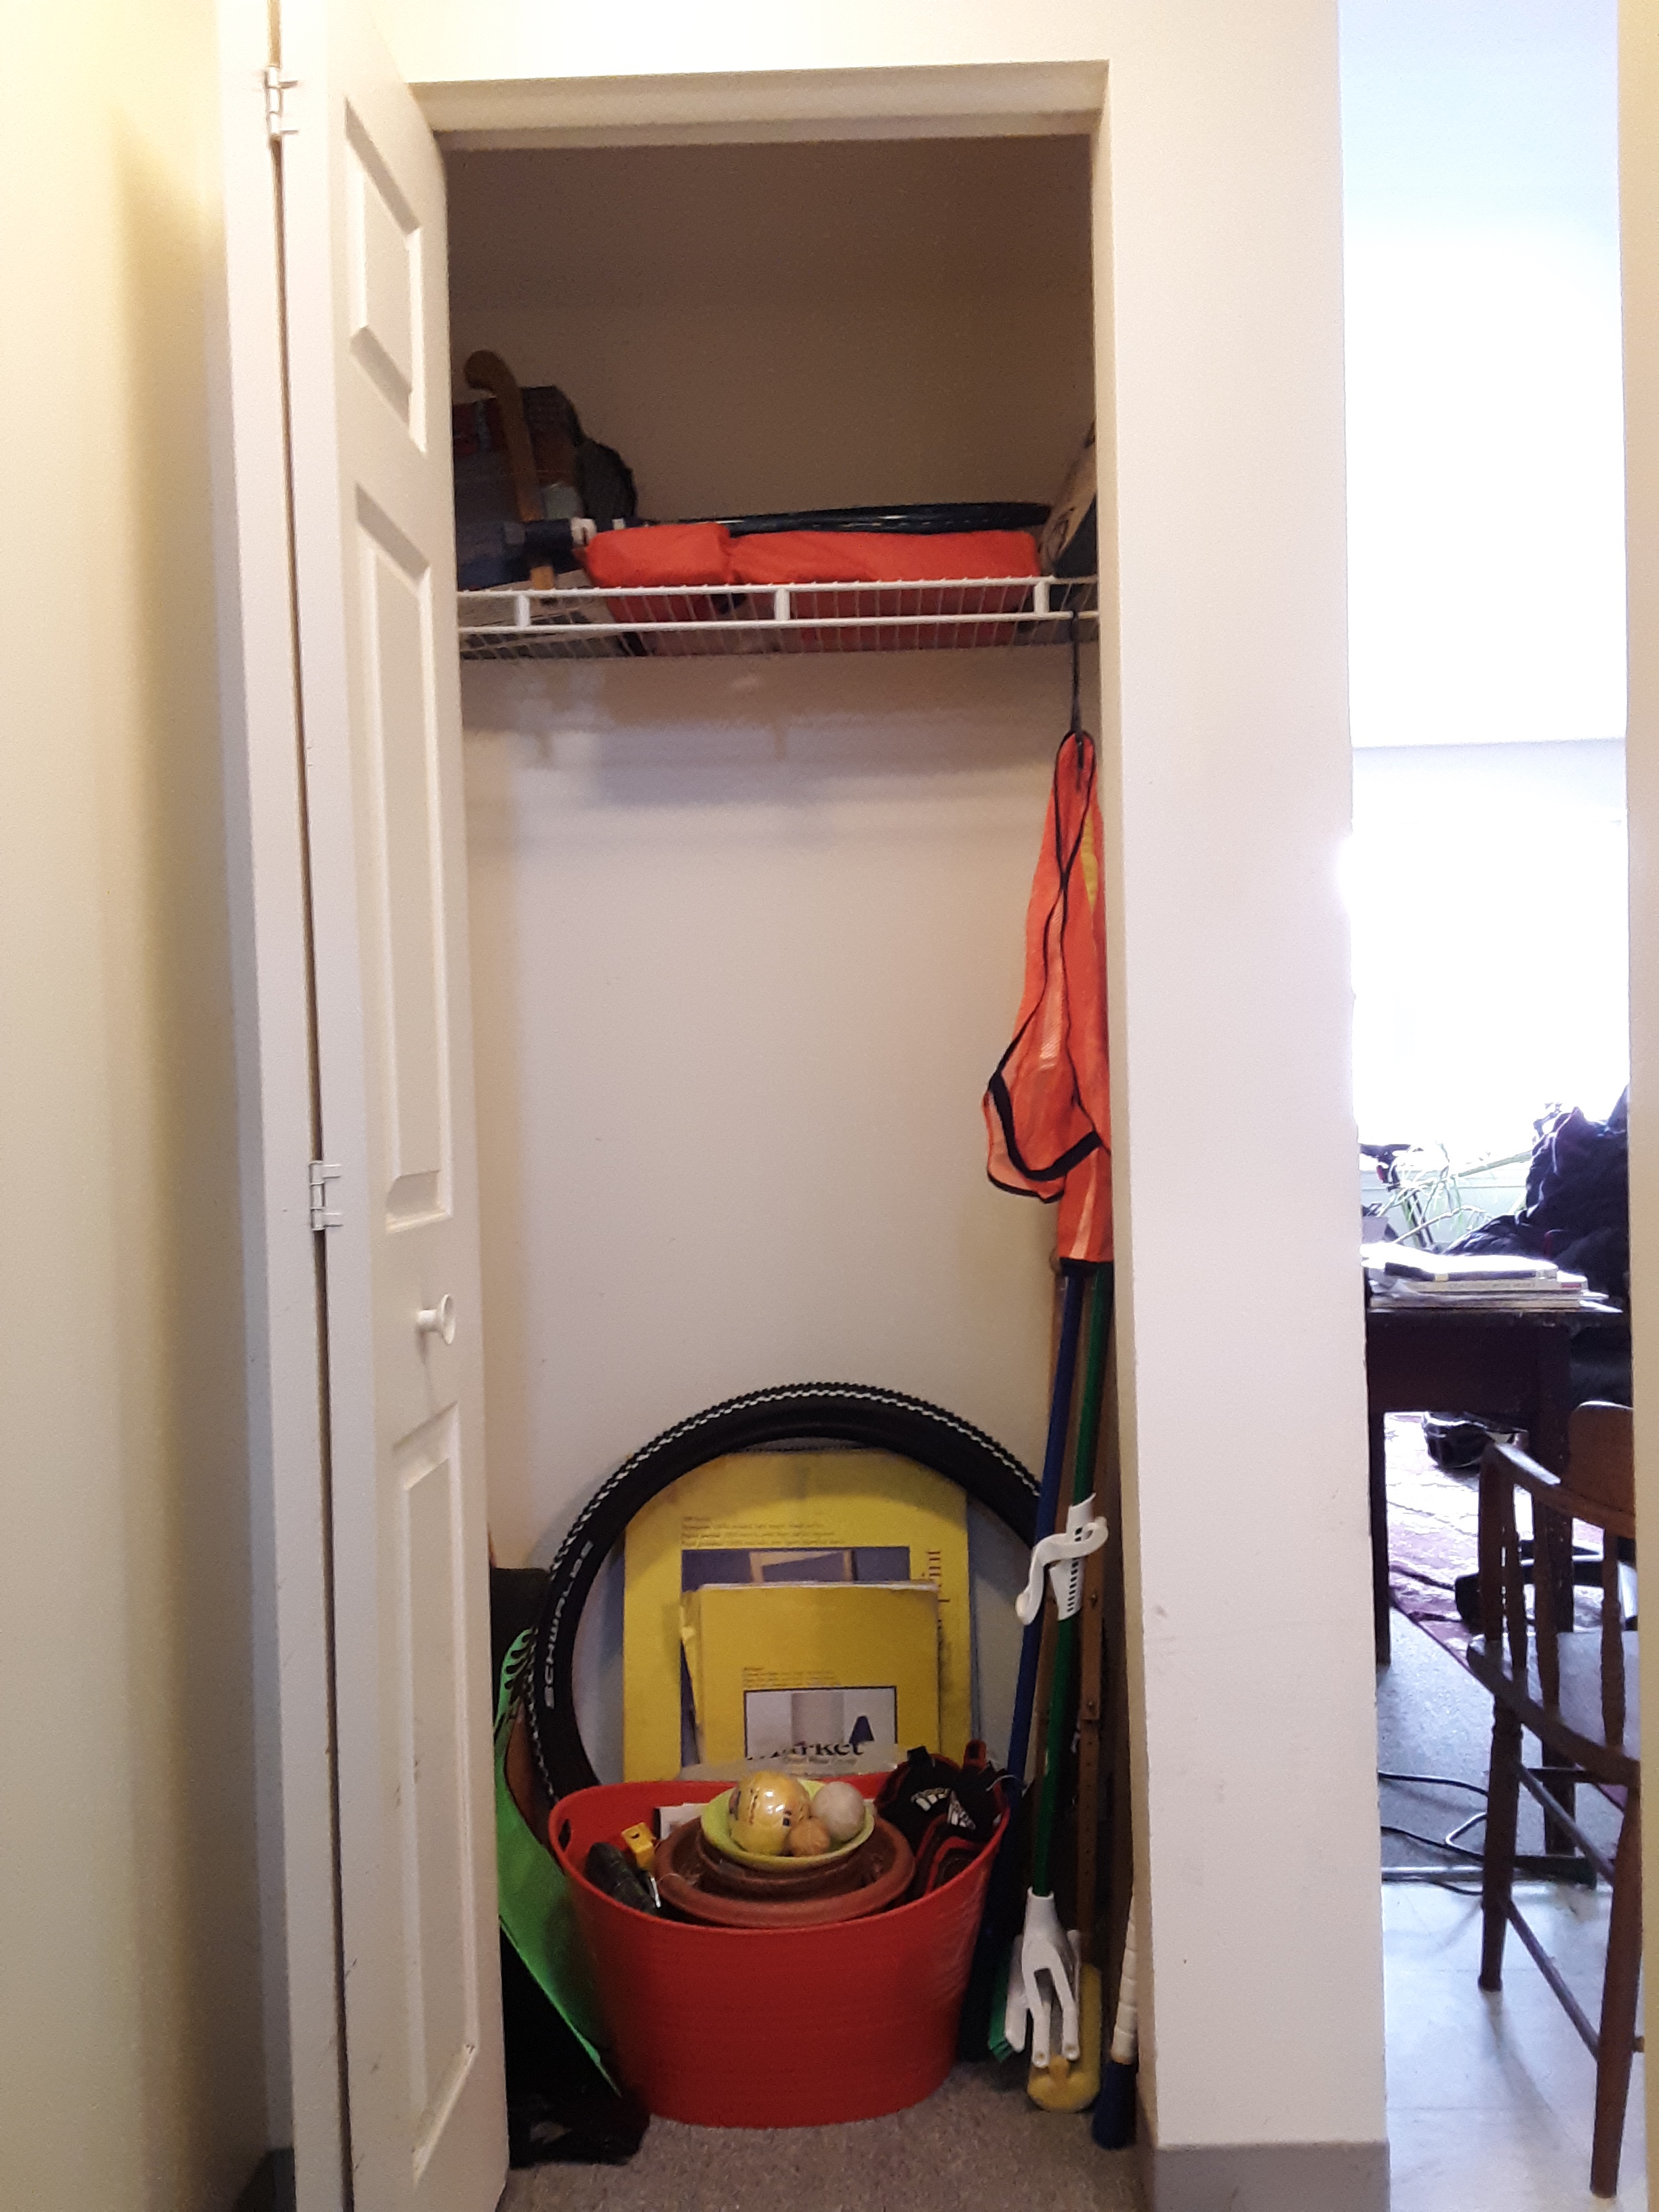 A closet, cleared of clutter and reorganized